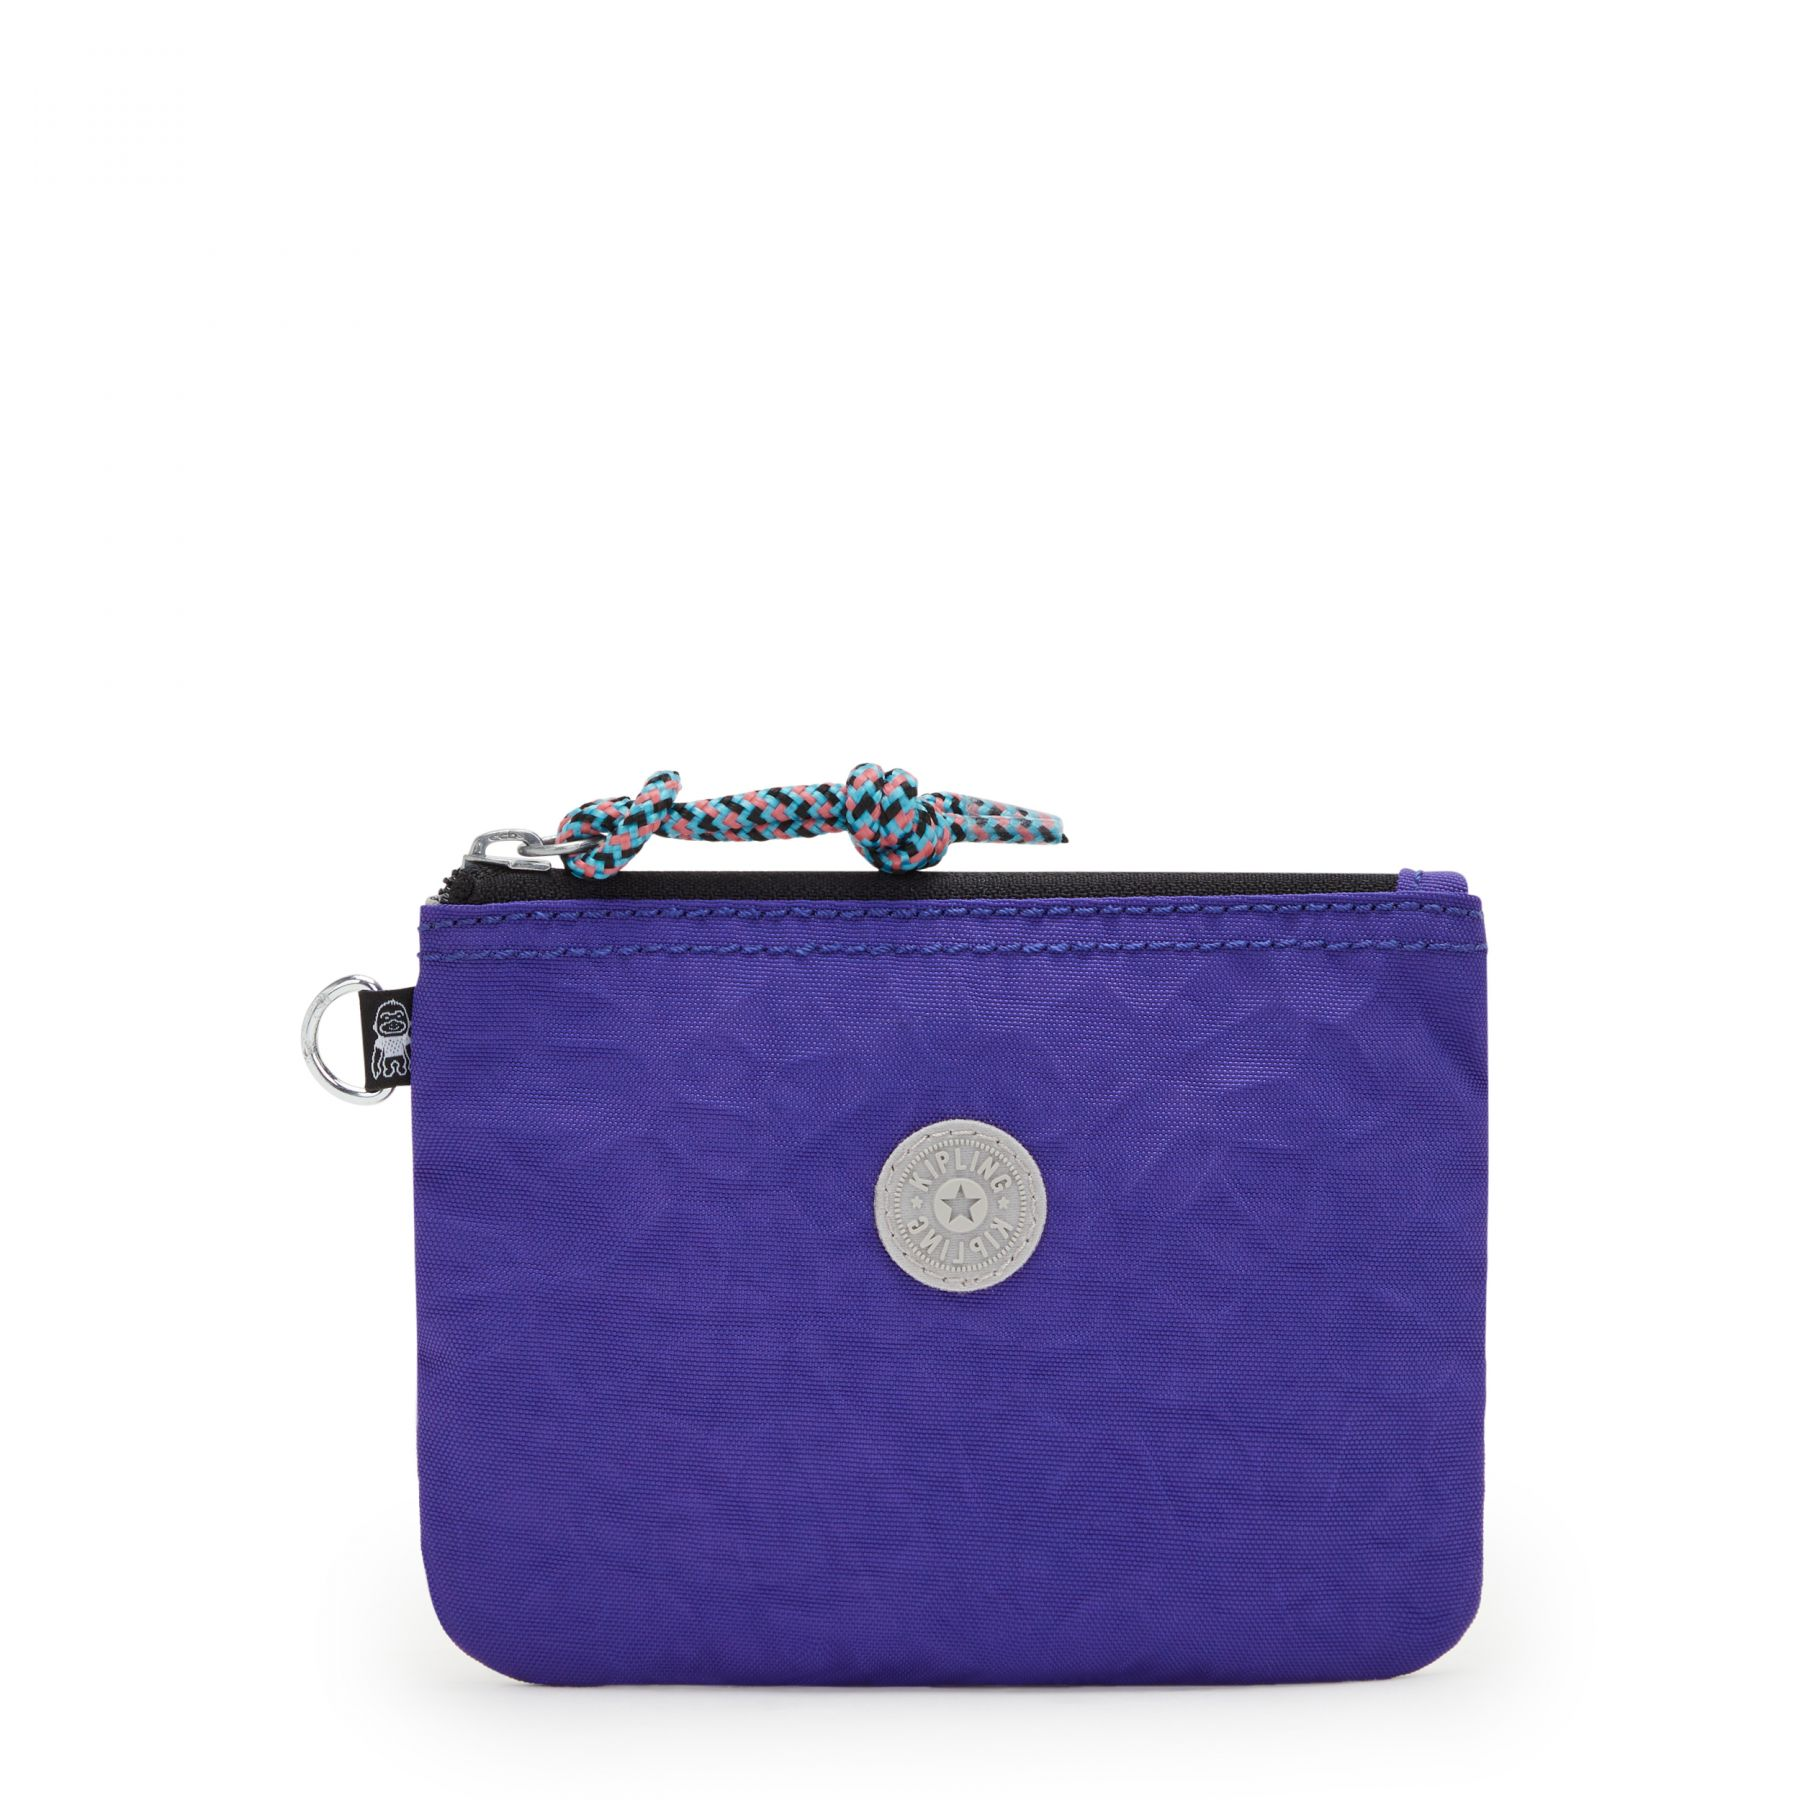 CASUAL POUCH ACCESSORIES by Kipling - Front view